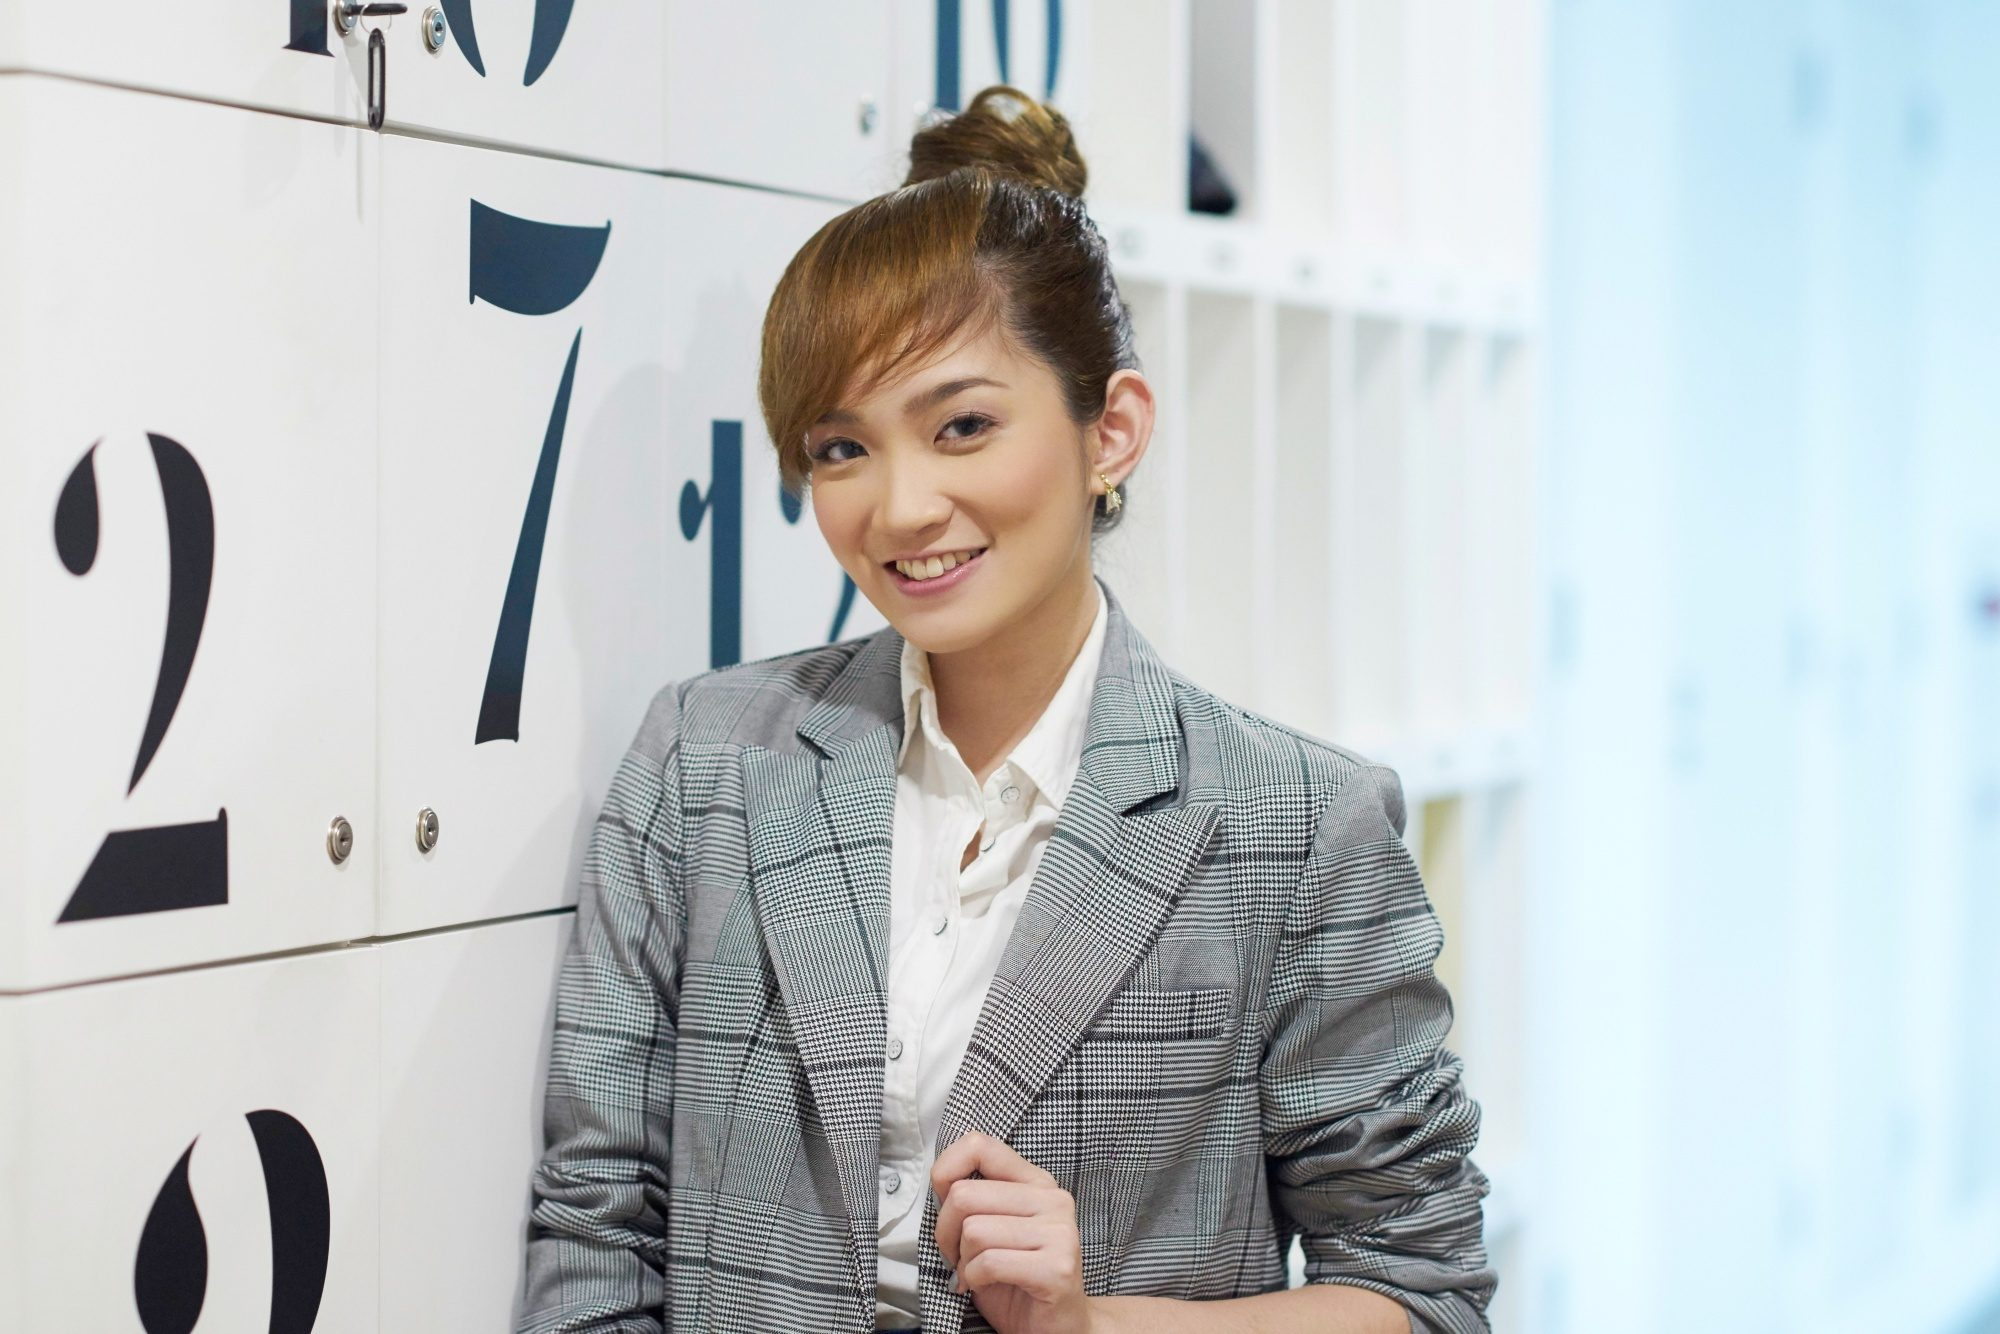 International Women's Day: Asian woman with long brown hair in a bun with faux bangs wearing a gray blazer